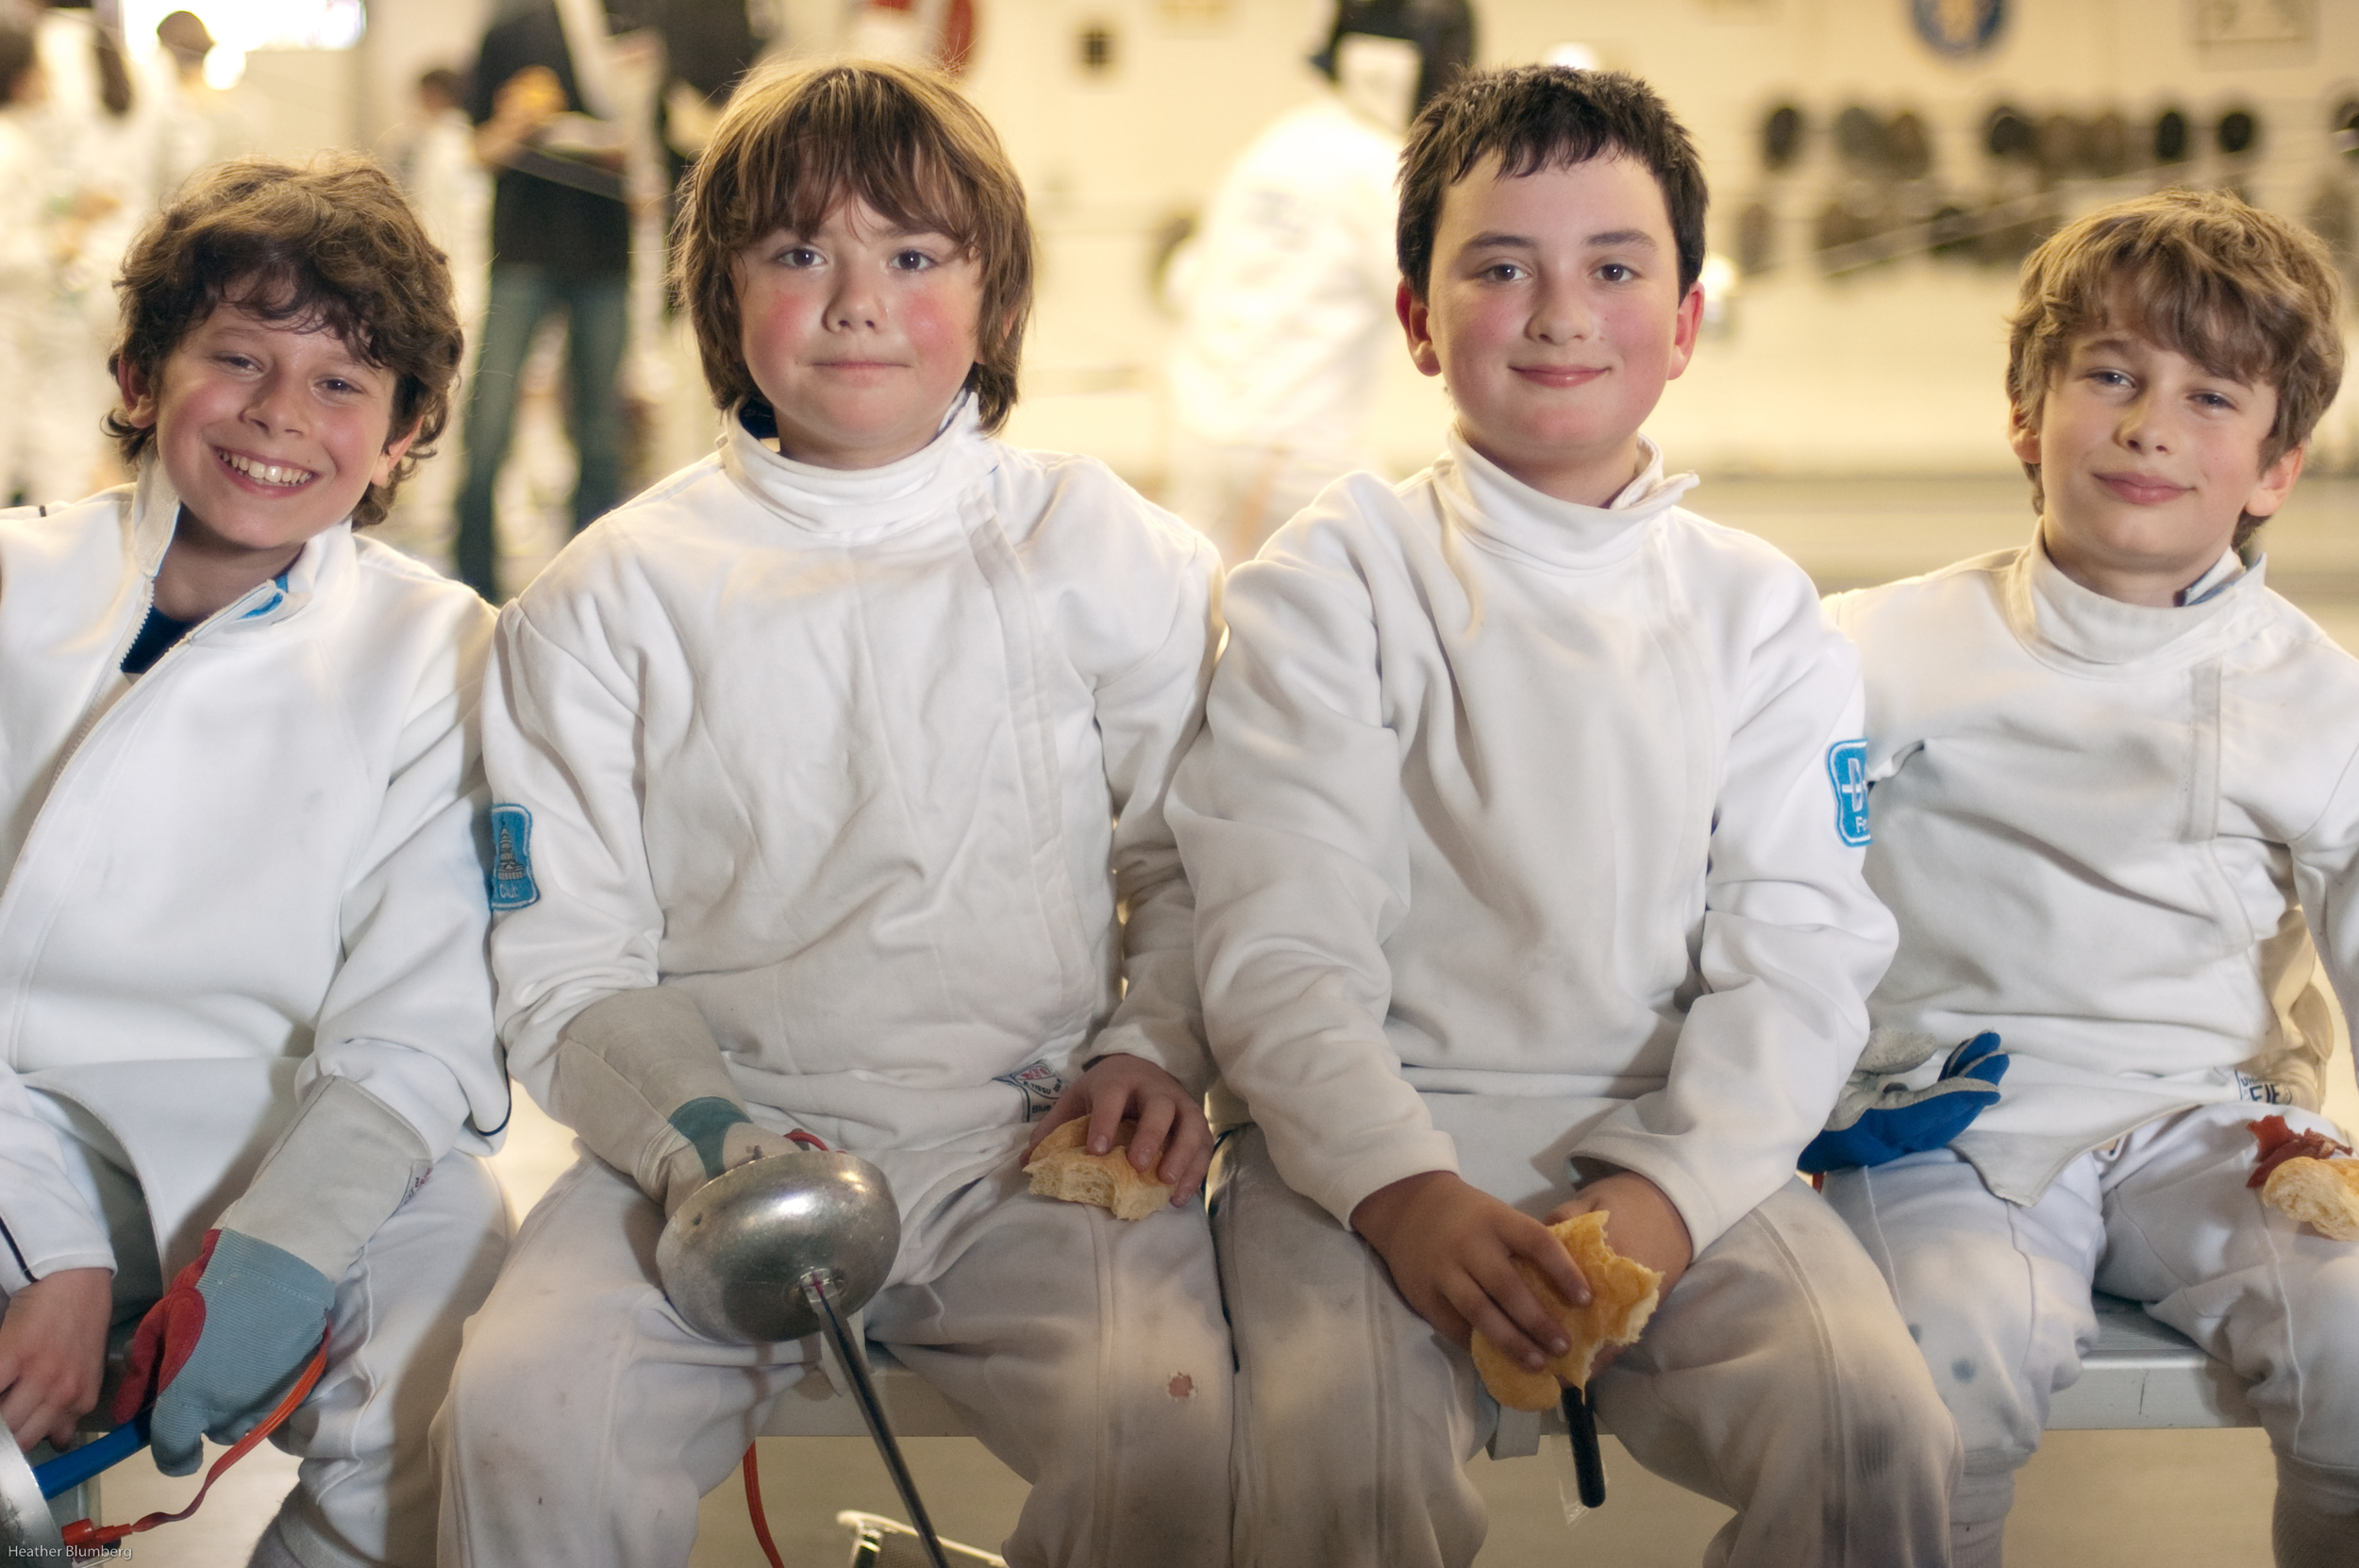 kids_fencing_picture.jpg